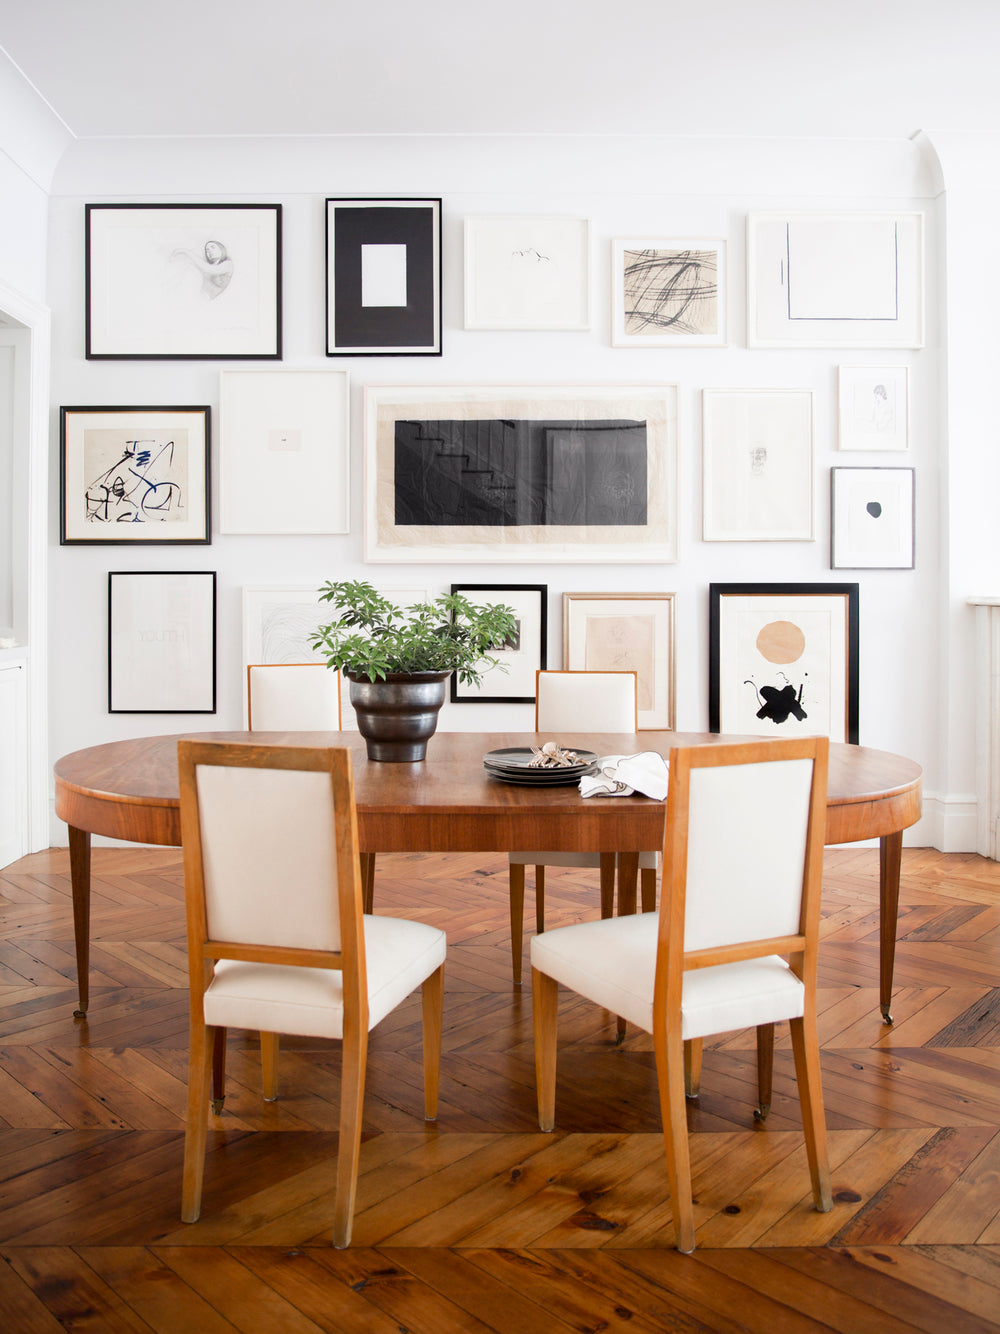 Dining Room Galleries for Wall